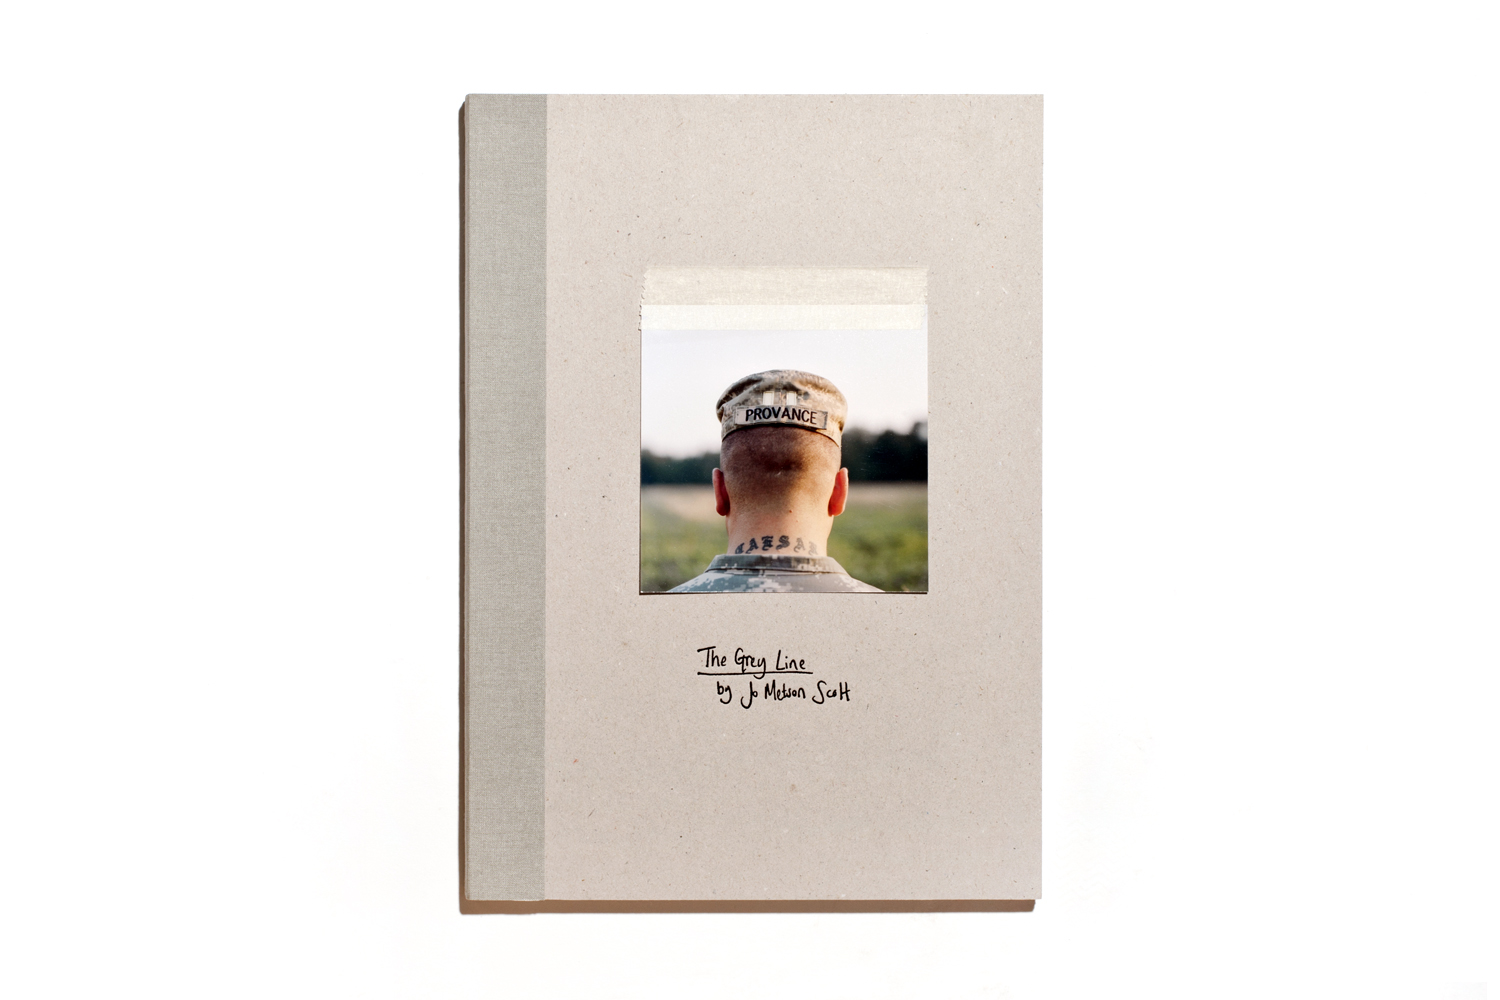 The Grey Line by Jo Metson Scott, published by Dewi Lewis, selected by Karan McQuaid, curator, The Photographers' Gallery, London.